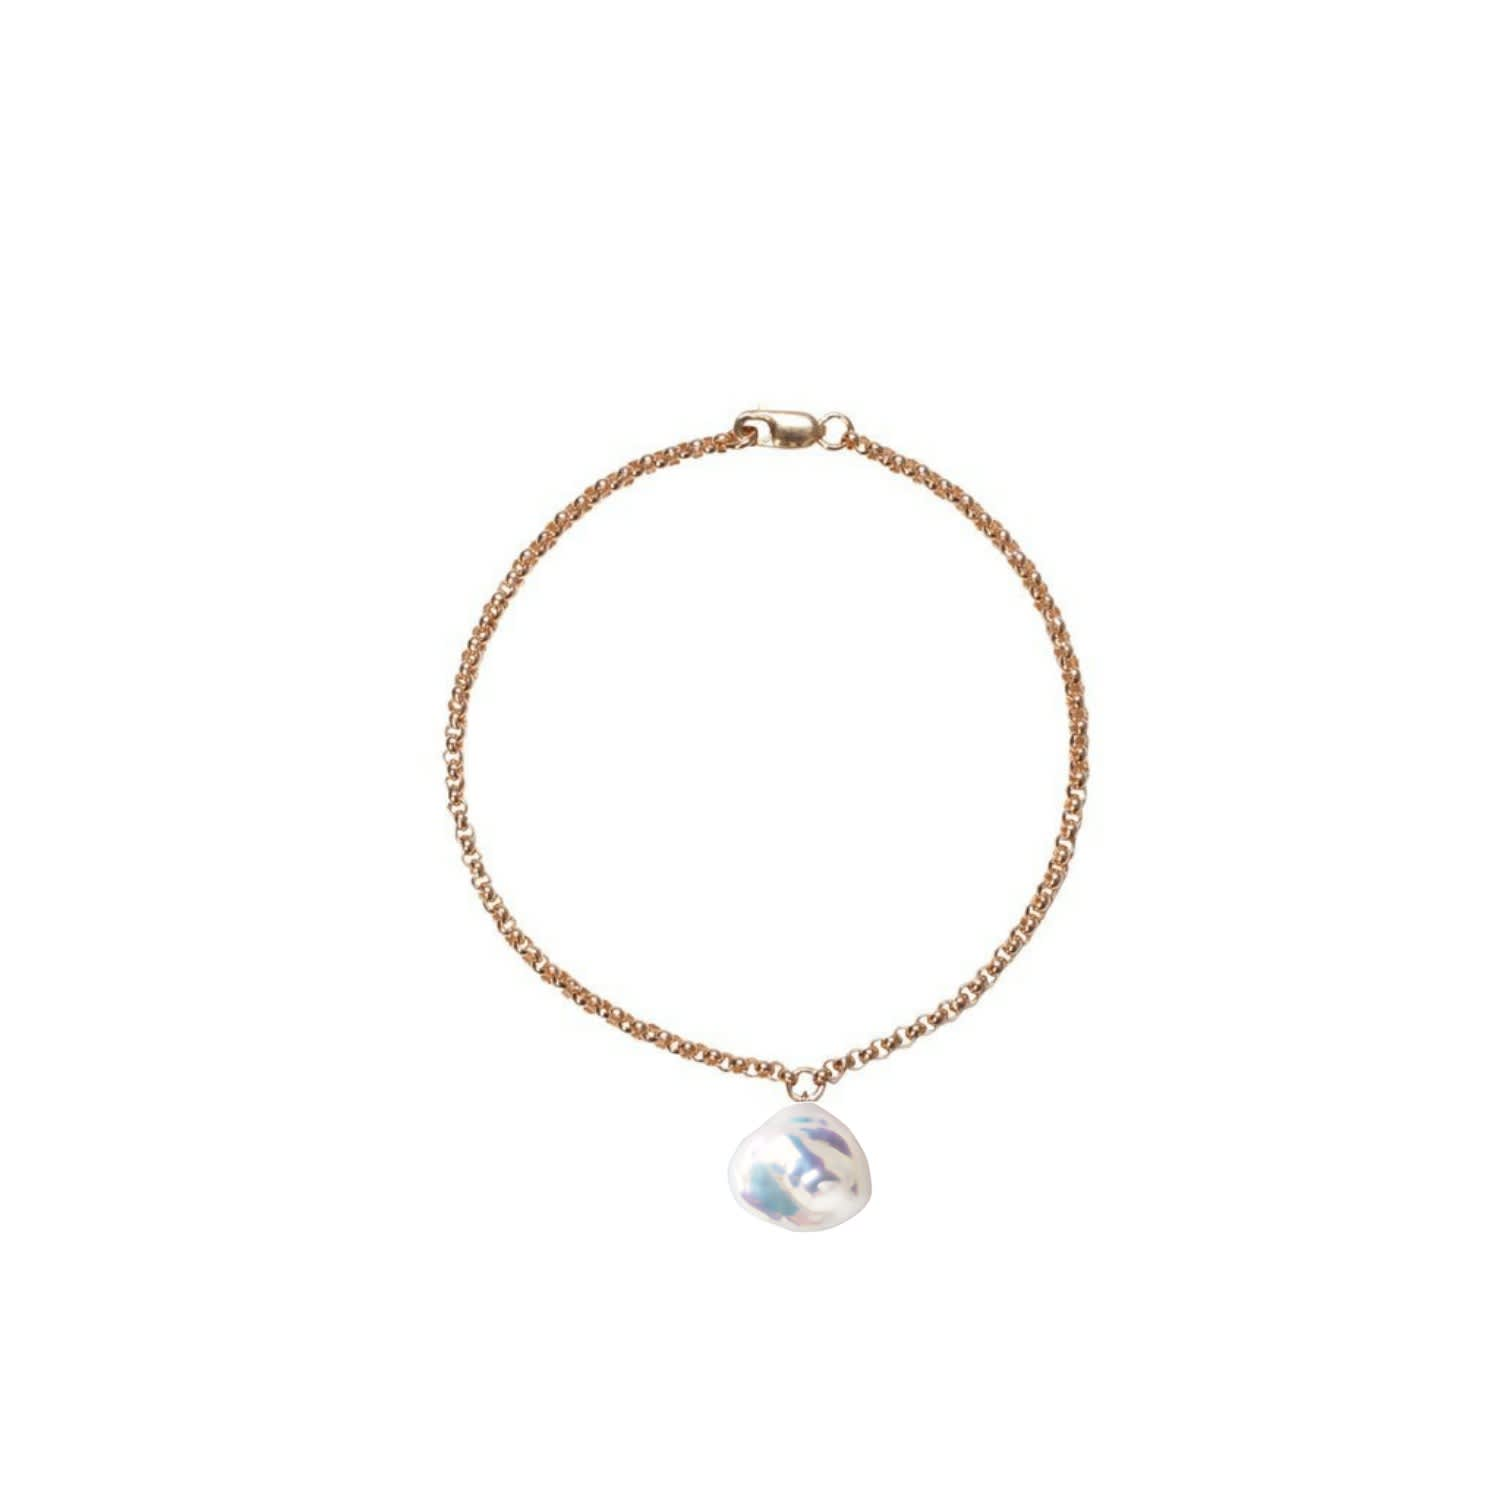 3a0573c6f2383 Mermaid Keshi Pearl Chain Bracelet Gold by ORA Pearls